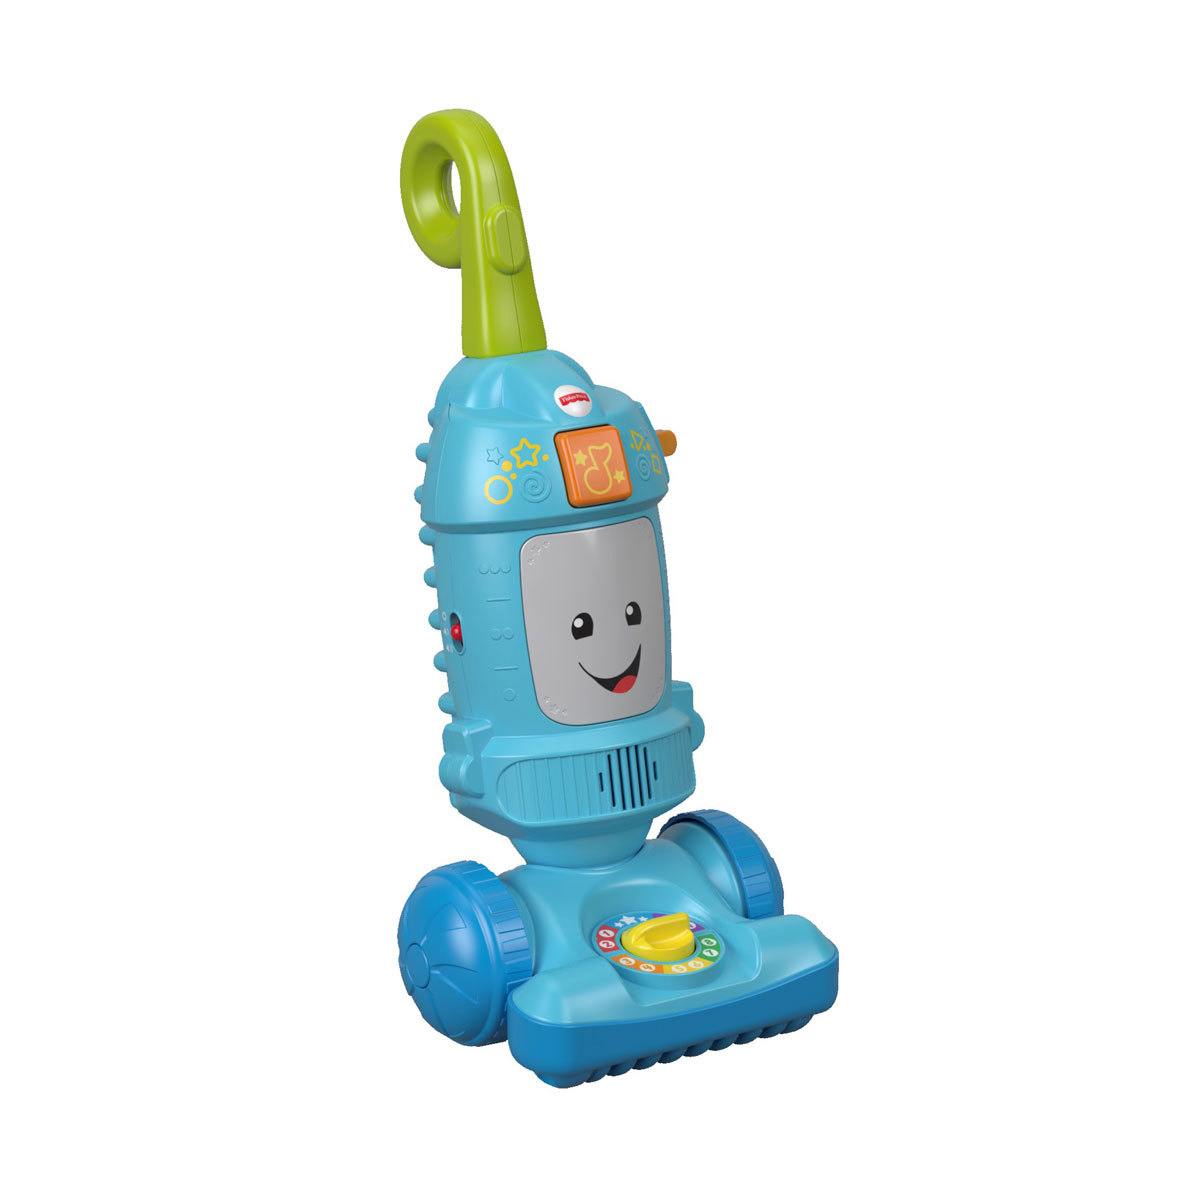 Fisher-Price Laugh & Learn Light-Up Learning Vacuum from Early Learning Center